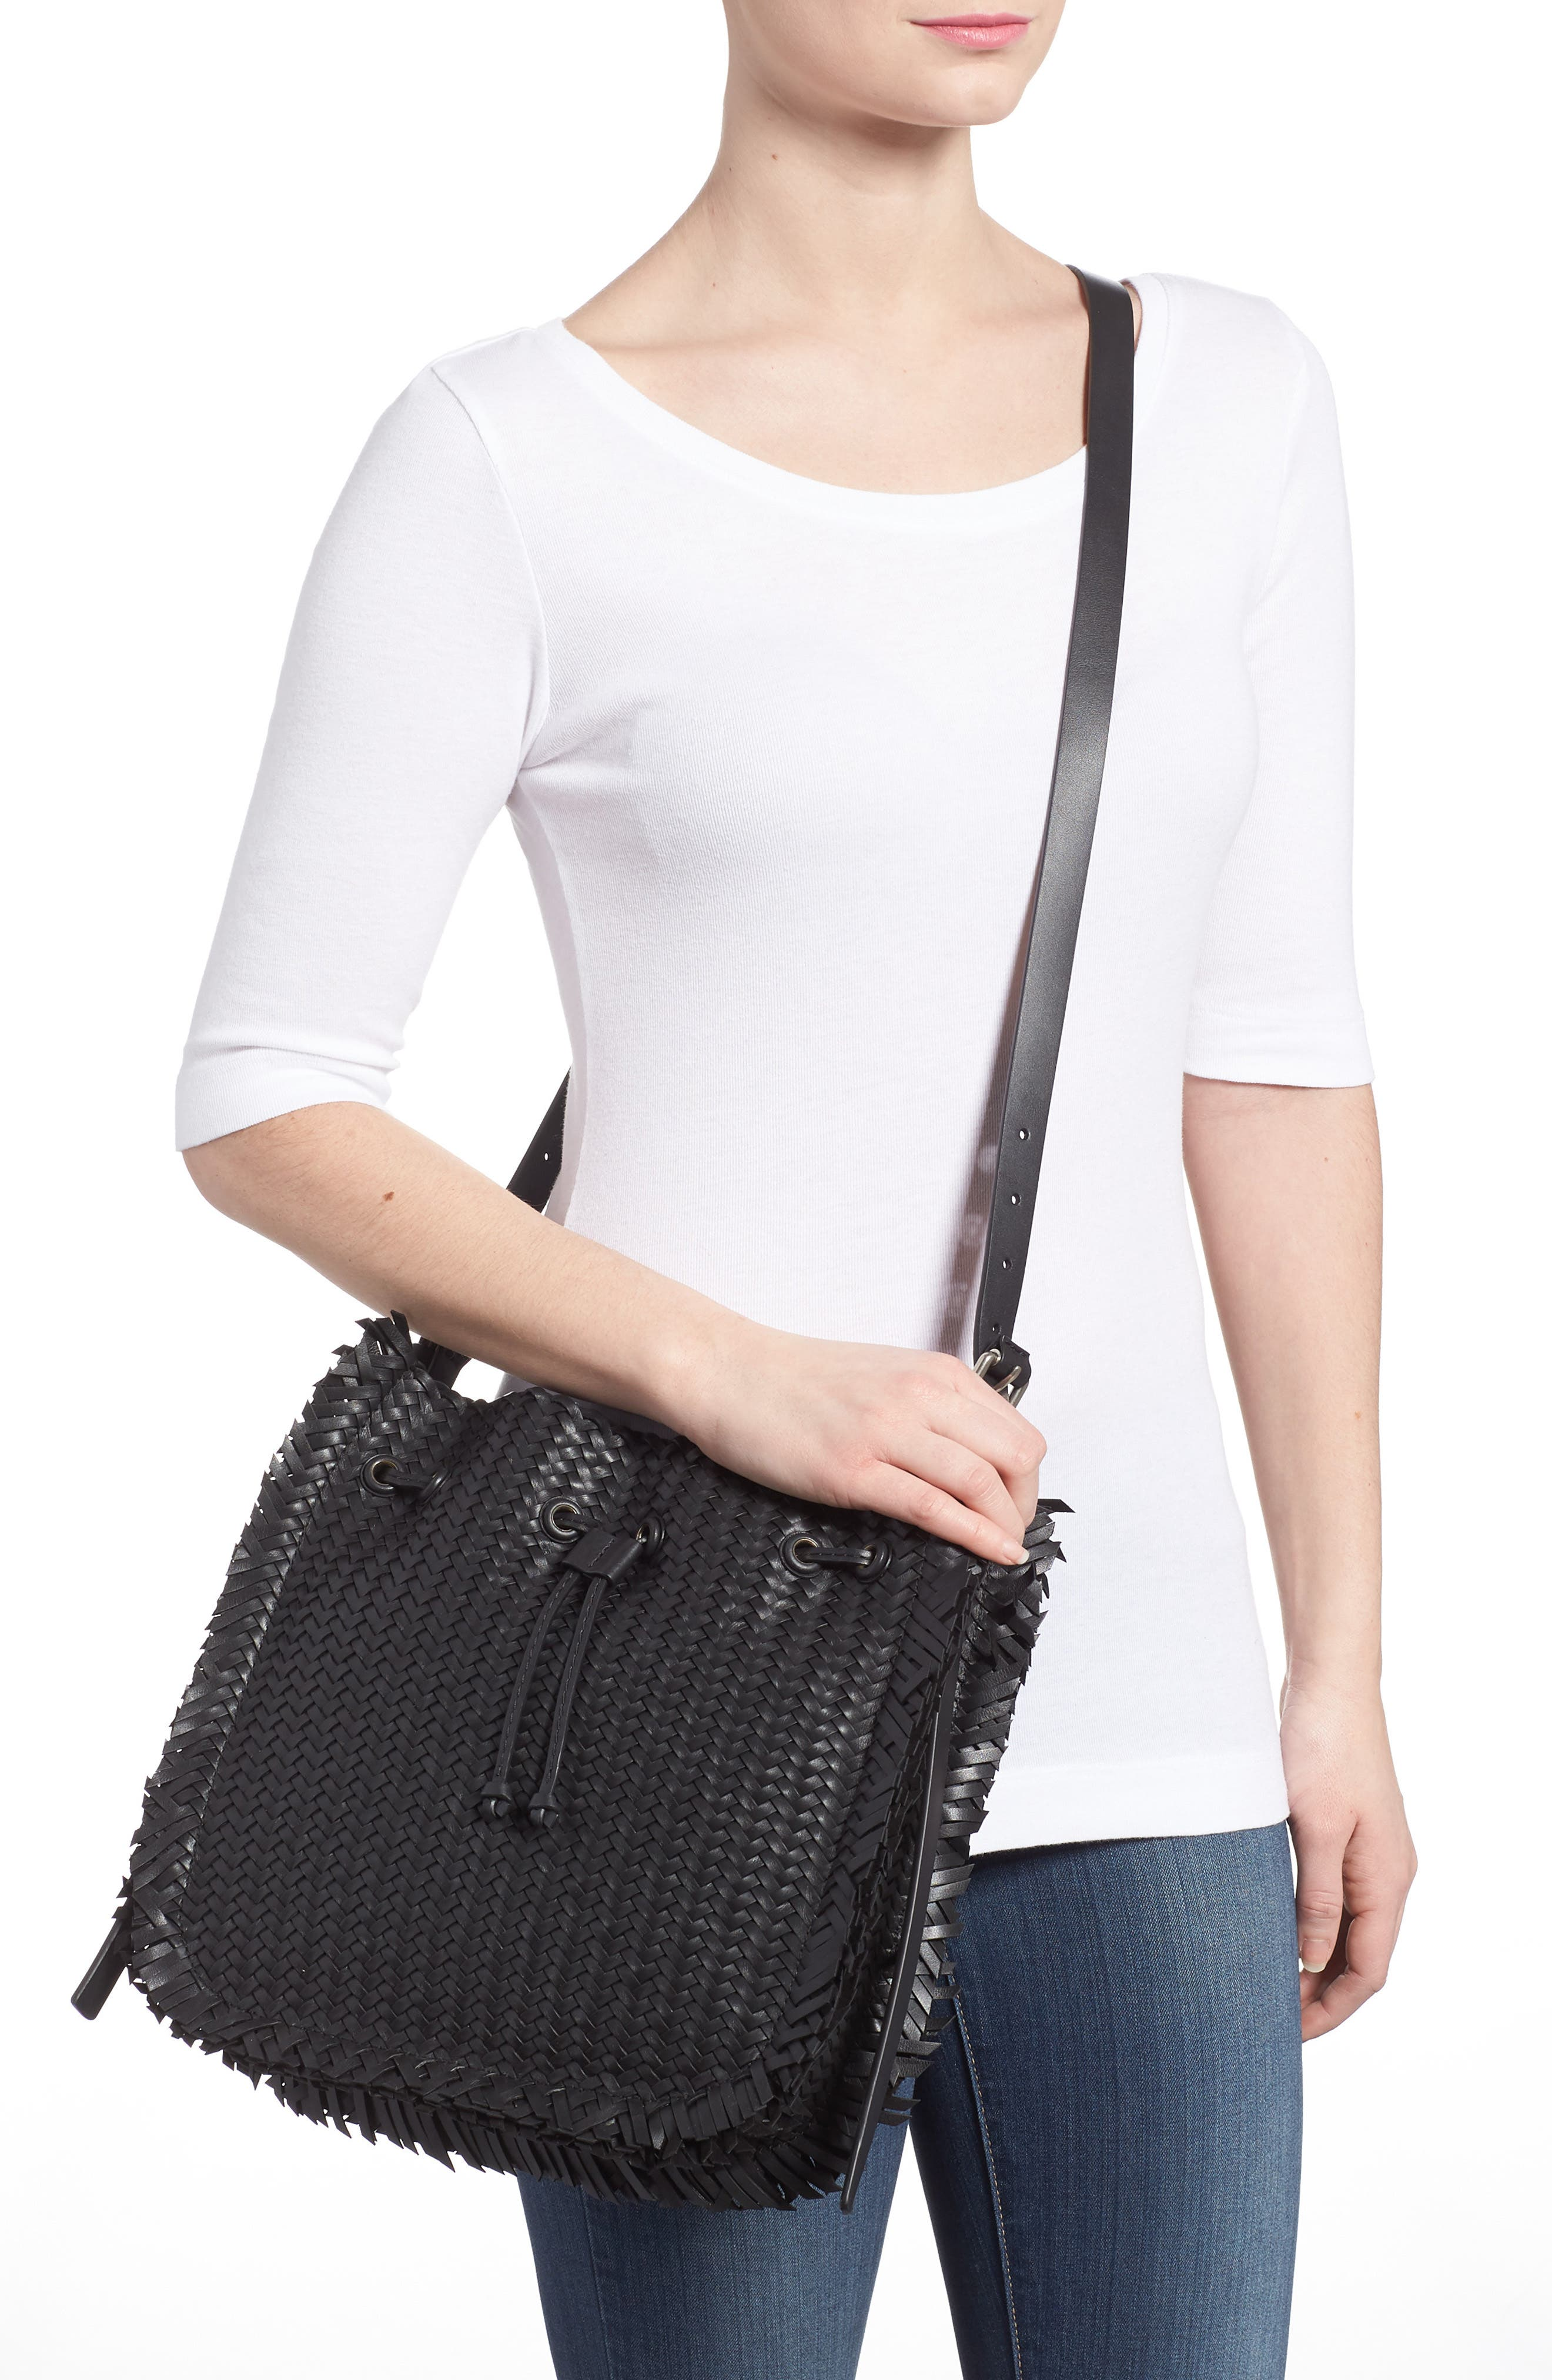 Maldives Woven Frayed Leather Tote,                             Alternate thumbnail 2, color,                             Black